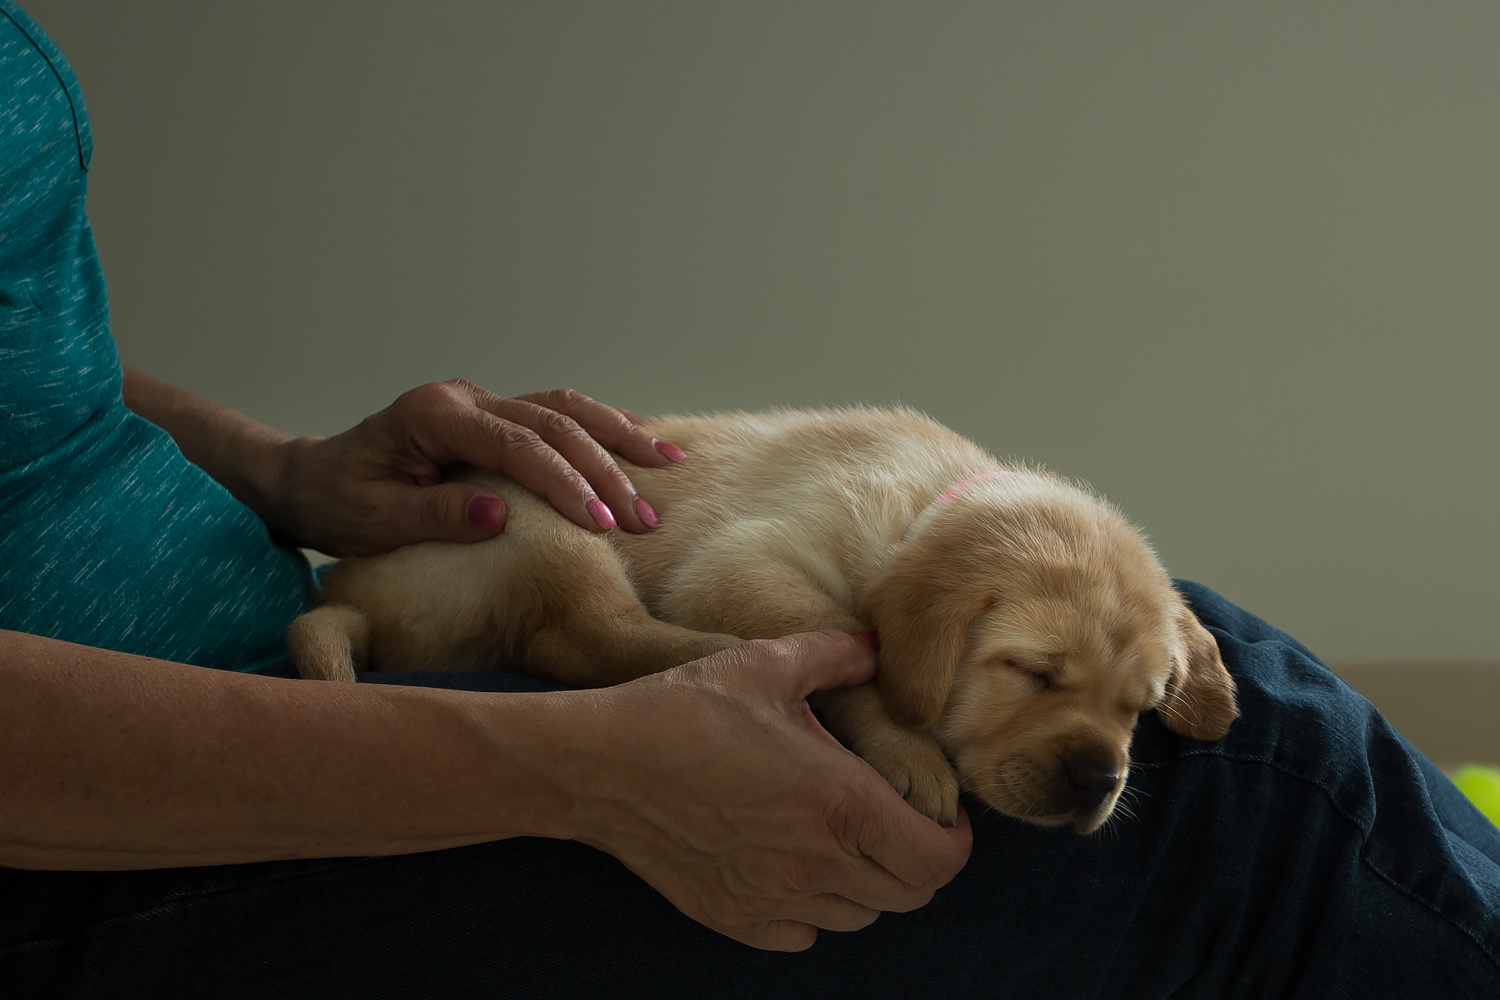 Guiding Eyes pup sleeps on volunteers lap while getting their paws rubbed.